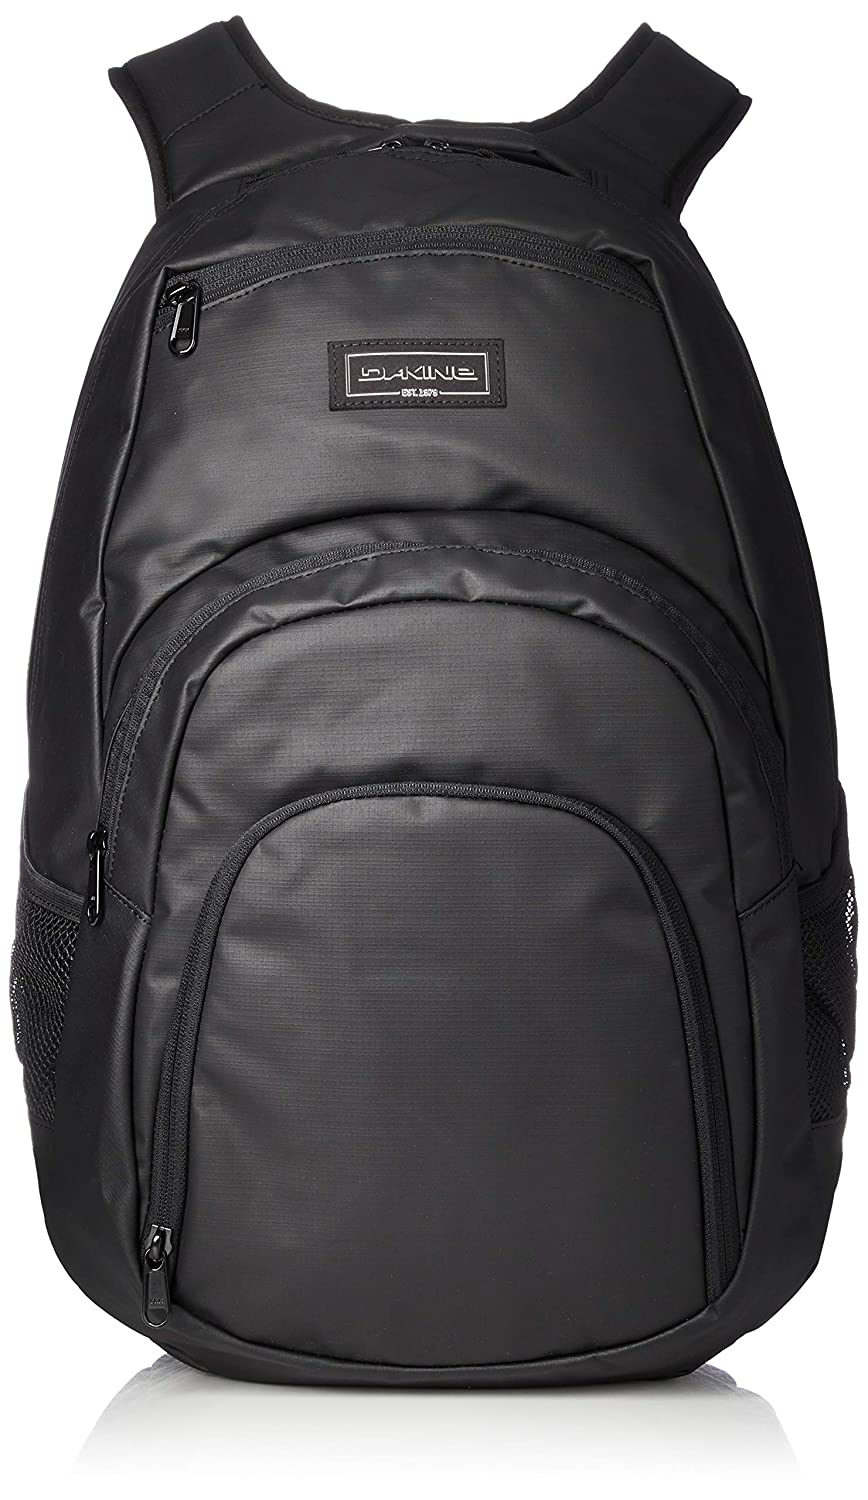 Dakine Campus LIfestyle Backpack 25L /& 33L Size Options